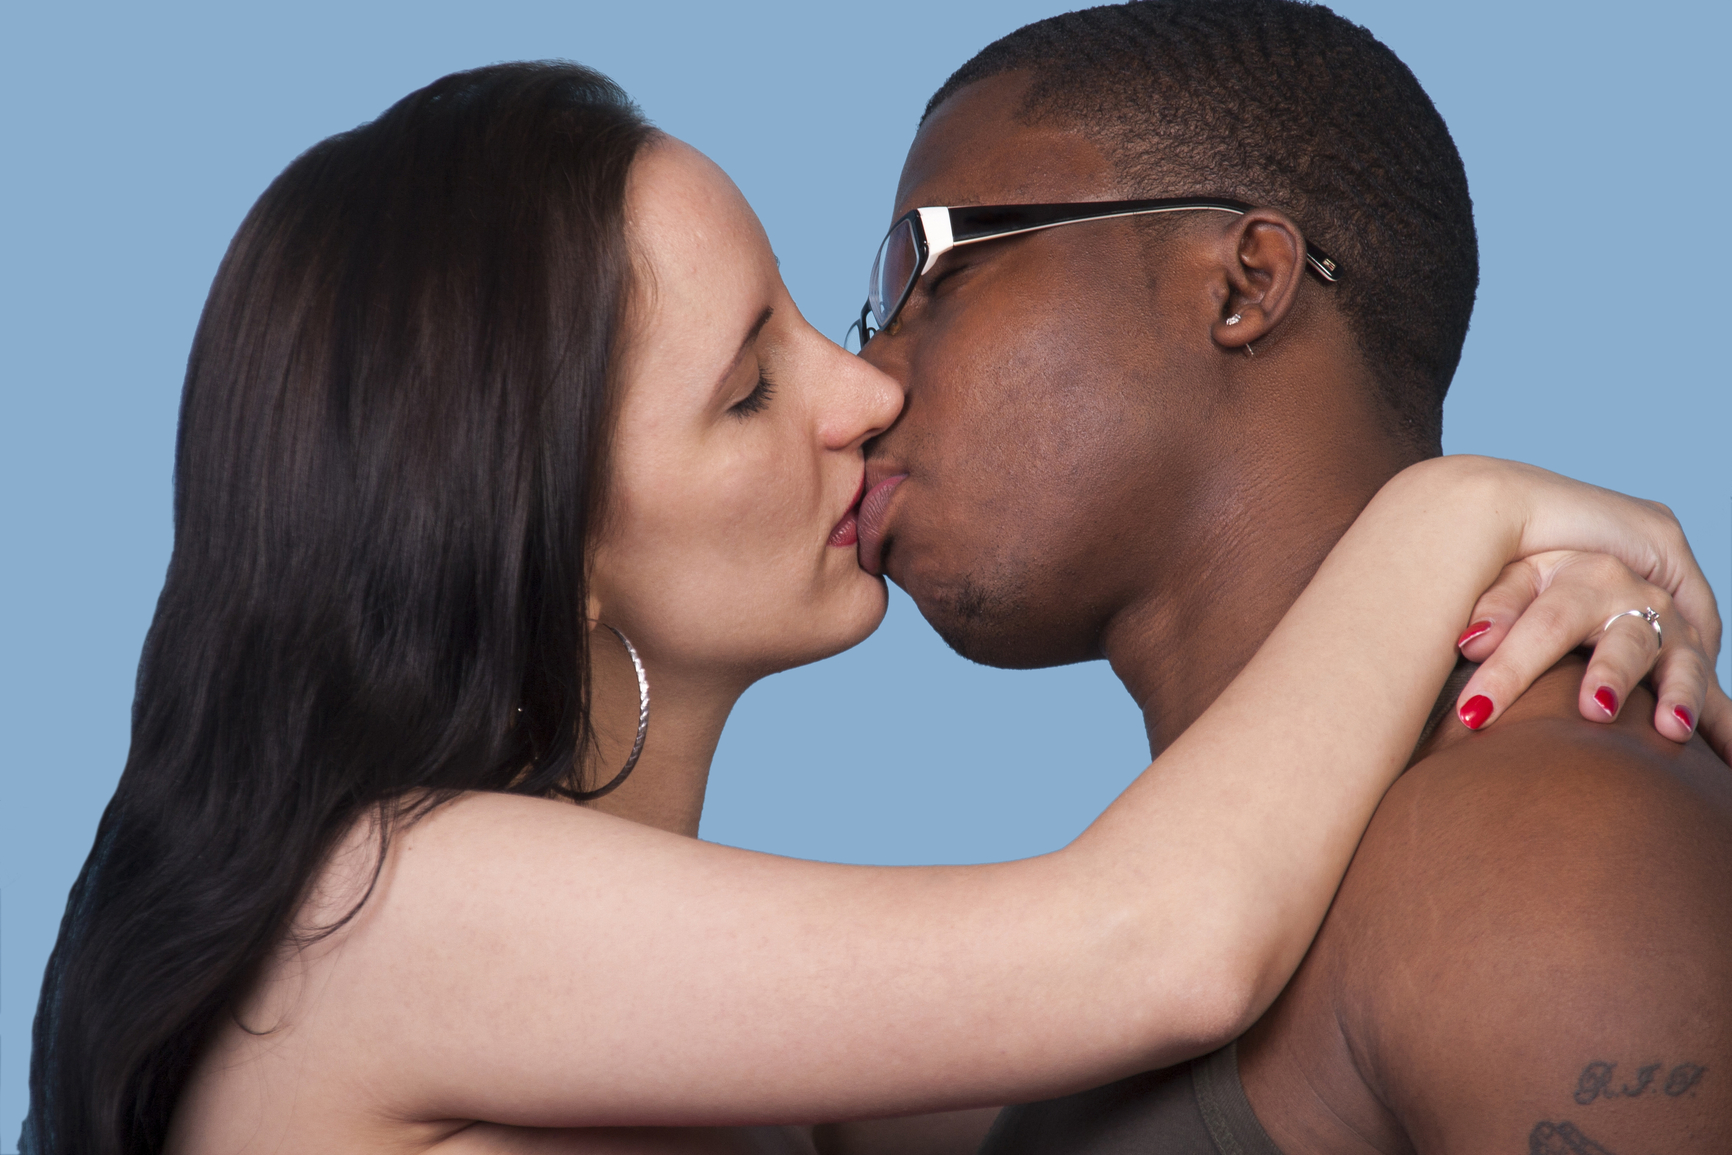 Black woman's guide to dating a white man